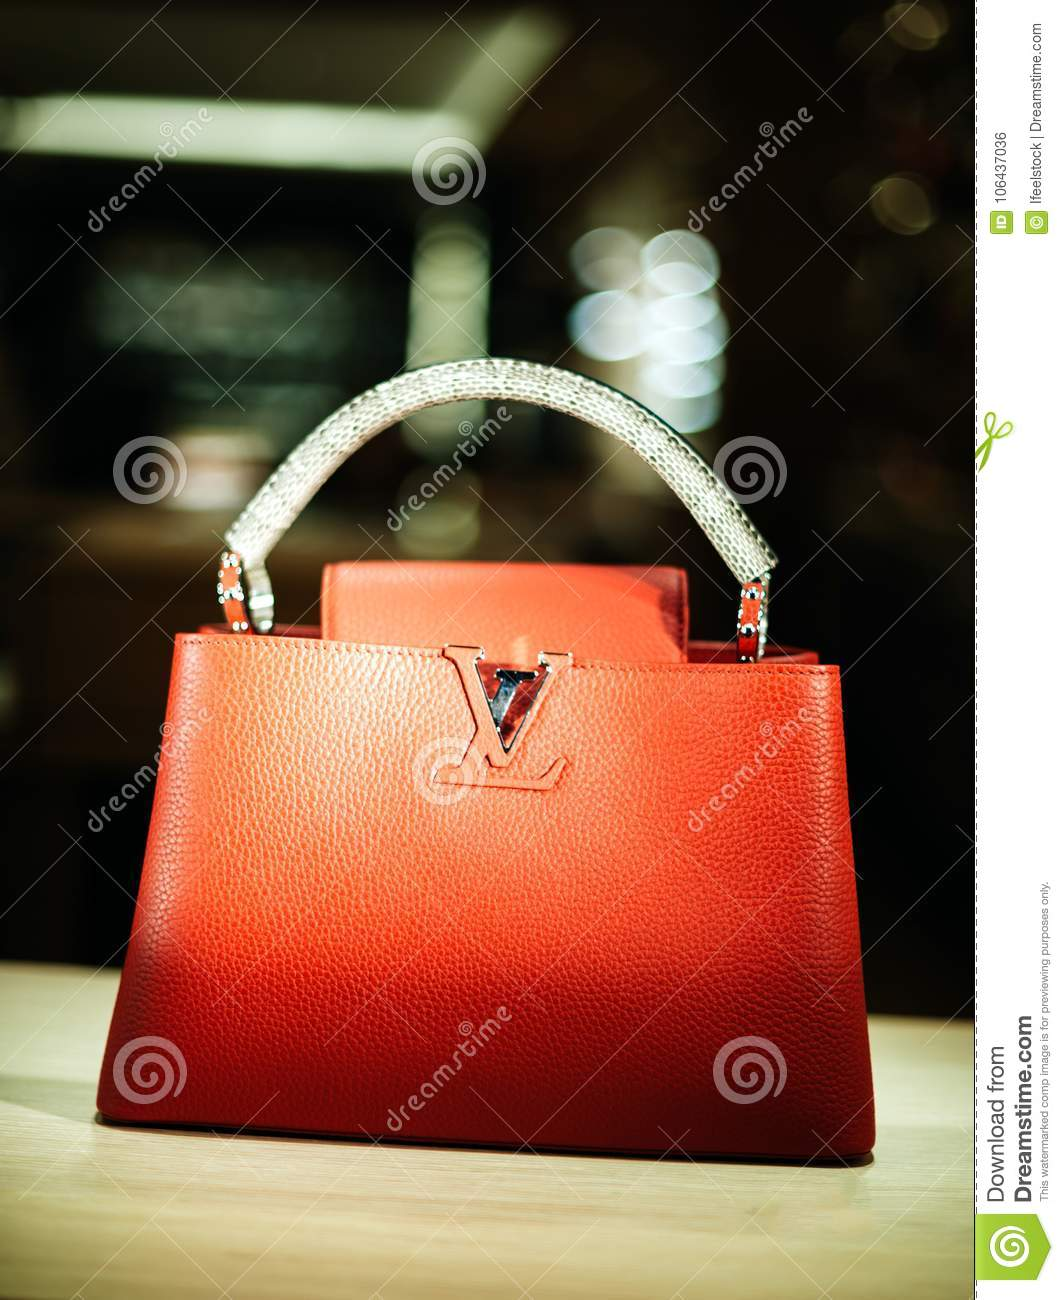 2790c0d889638 Luxury Leather Louis Vuitton LVMH Leather Bags Editorial Photo ...